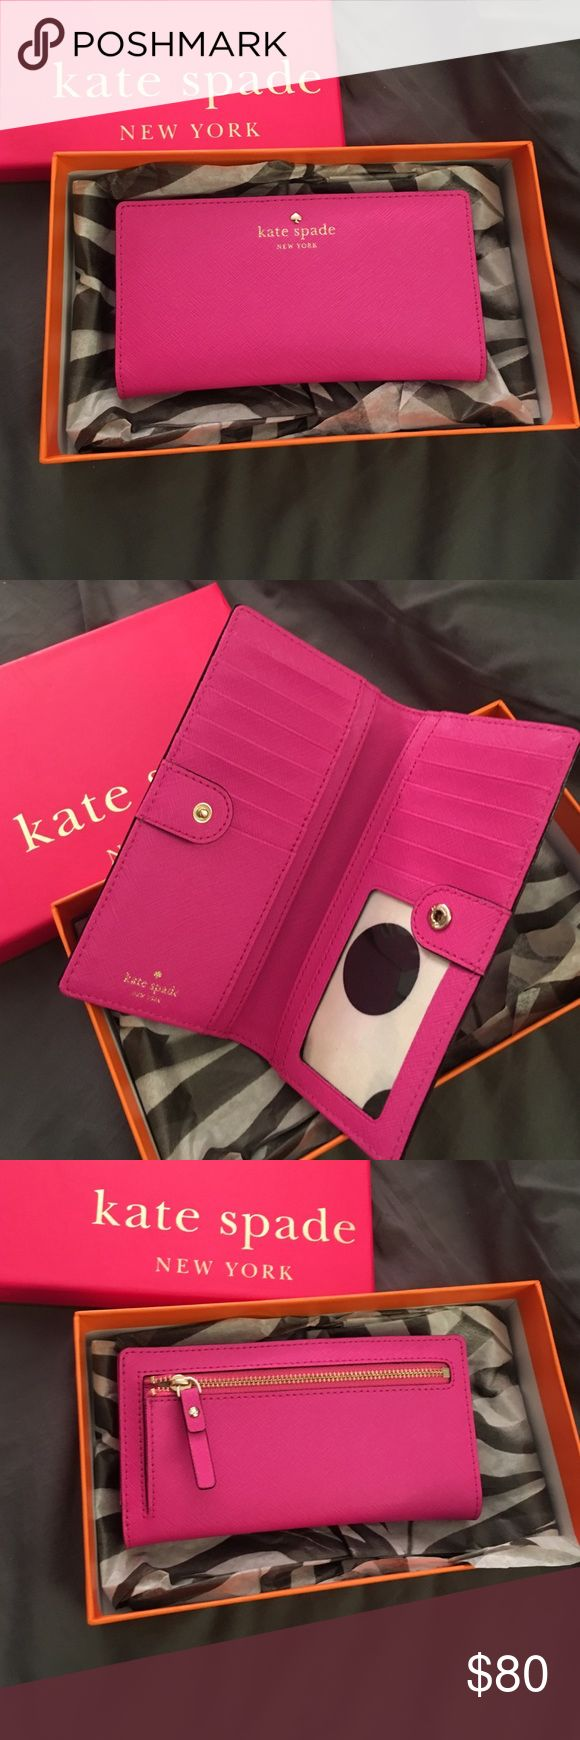 Kate spade cedar street Stacy wallet Brand new Kate spade wallet, no wear and tear. I've never used it and it's been sitting in my closet. The wallet is a pretty pink color which is why I bought it but never got around to using it. kate spade Bags Wallets